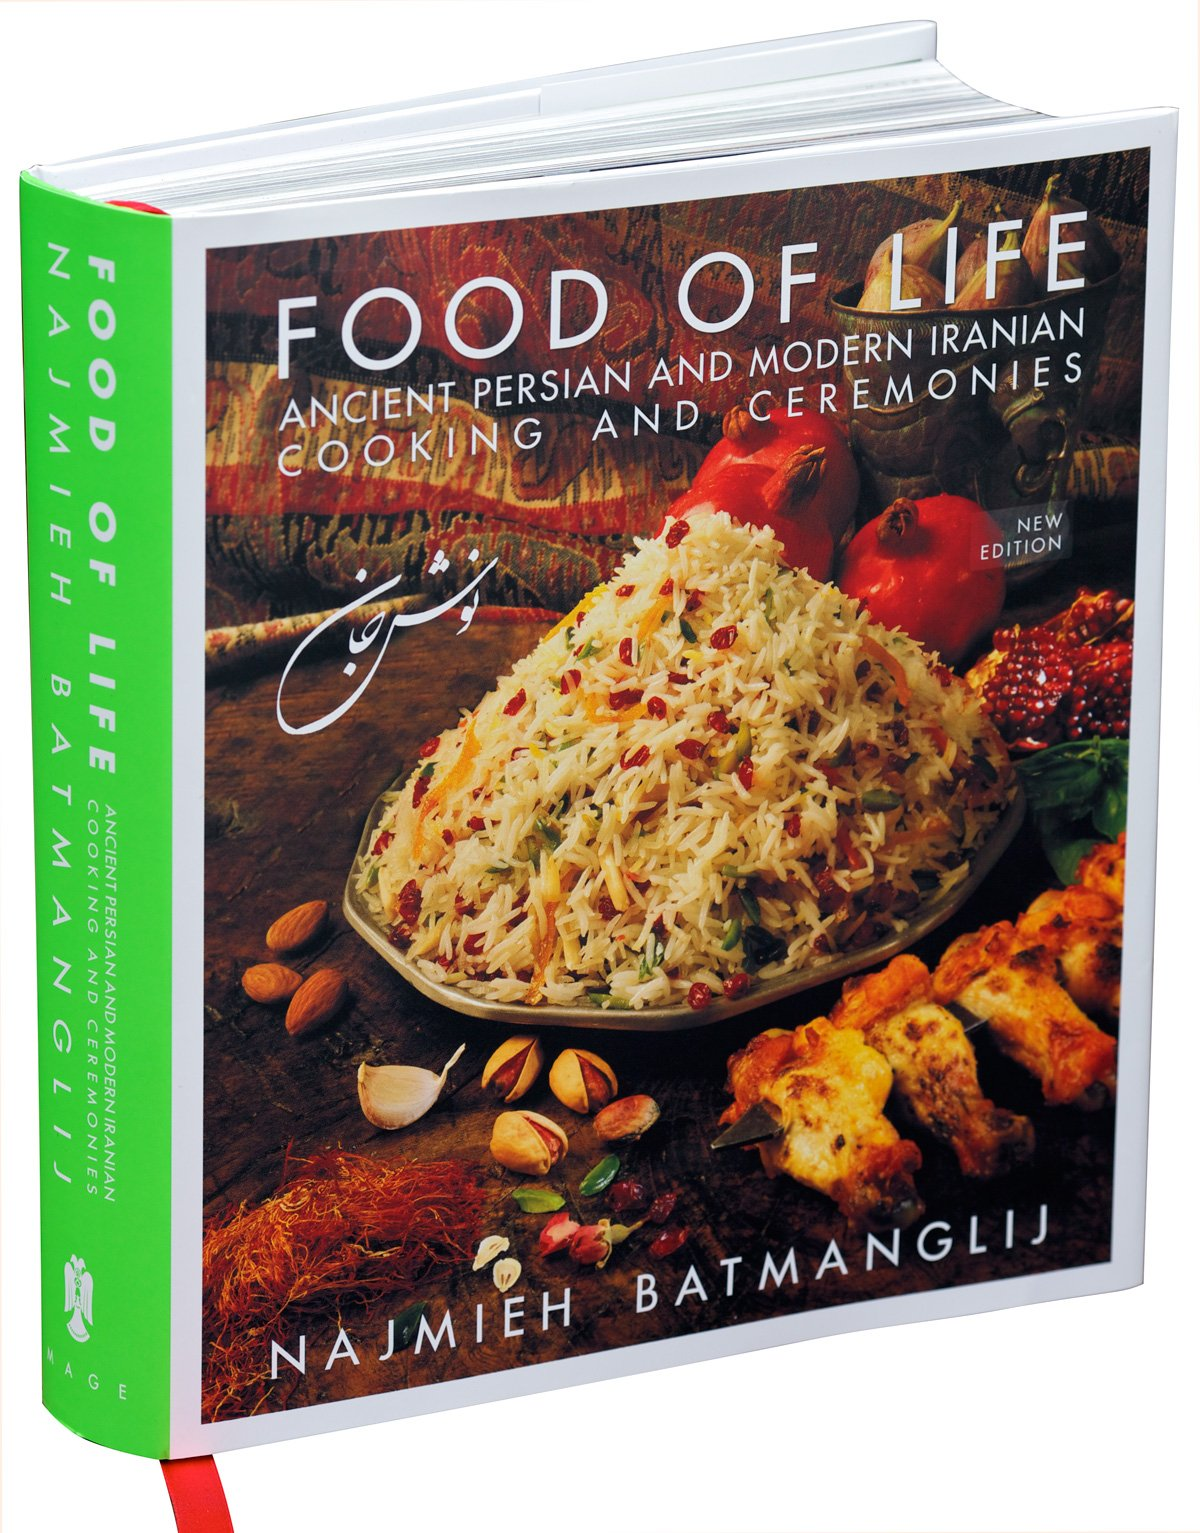 Food of life ancient persian and modern iranian cooking and food of life ancient persian and modern iranian cooking and ceremonies najmieh batmanglij 9781933823478 amazon books forumfinder Gallery